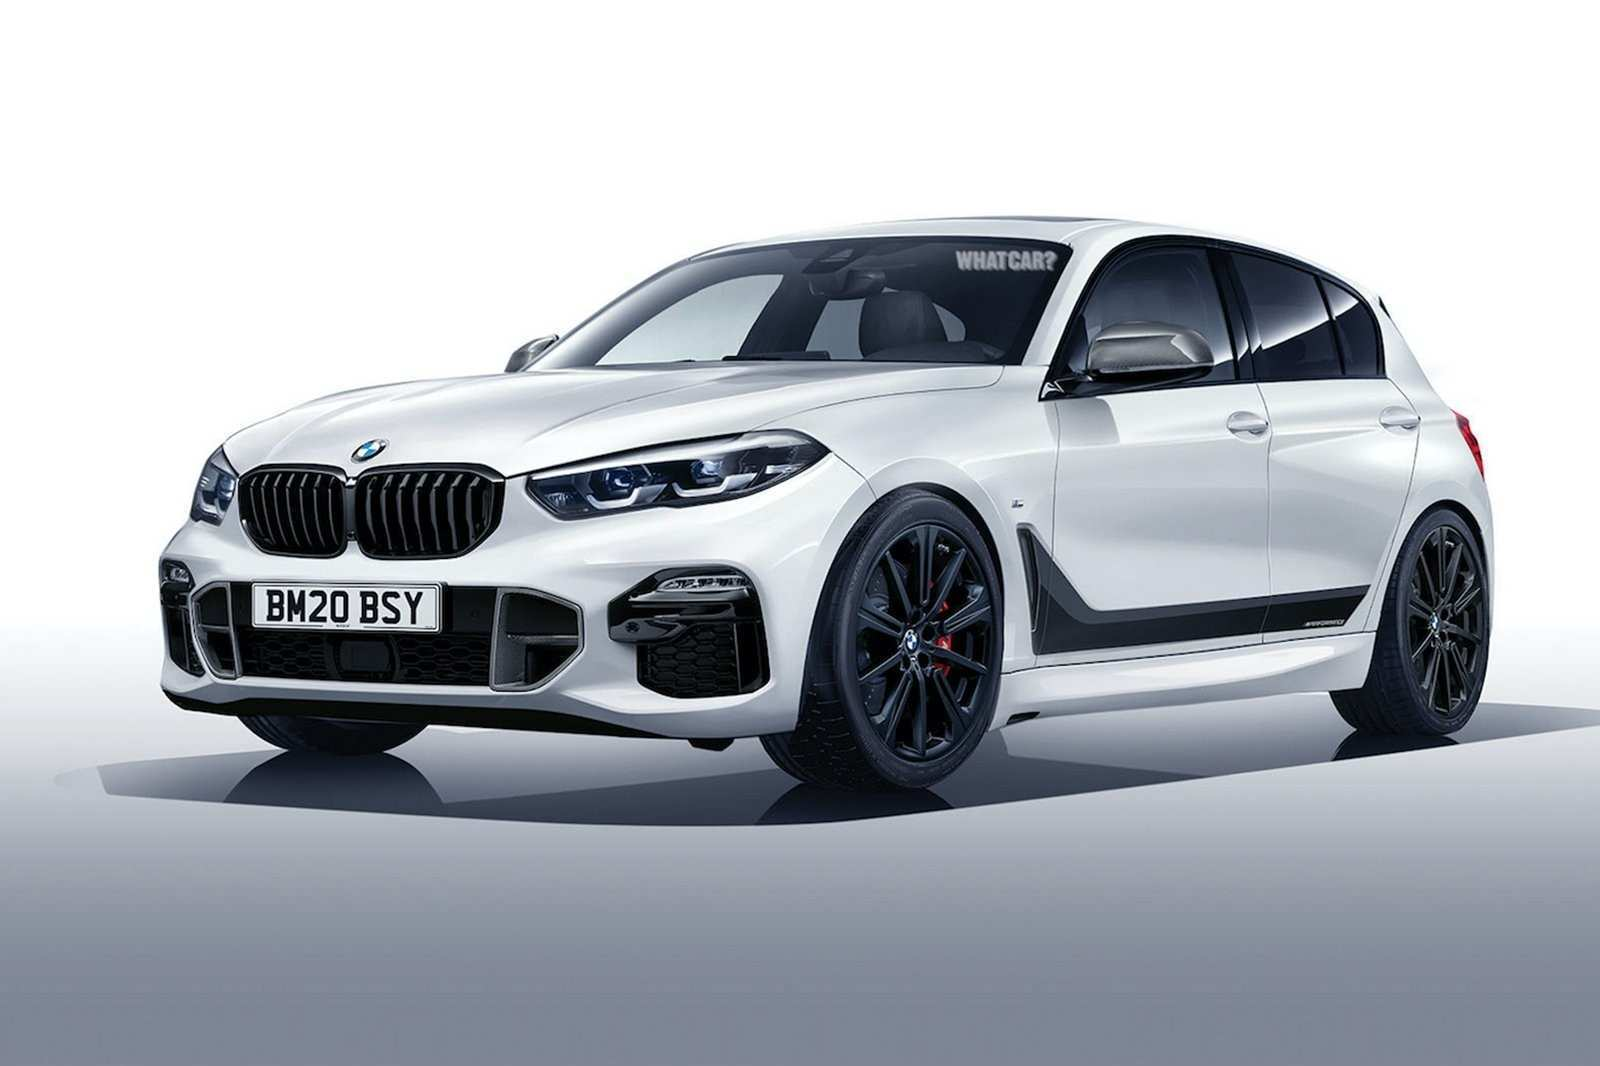 16 Best Review Bmw One Series 2019 Interior Exterior And Review Exterior for Bmw One Series 2019 Interior Exterior And Review